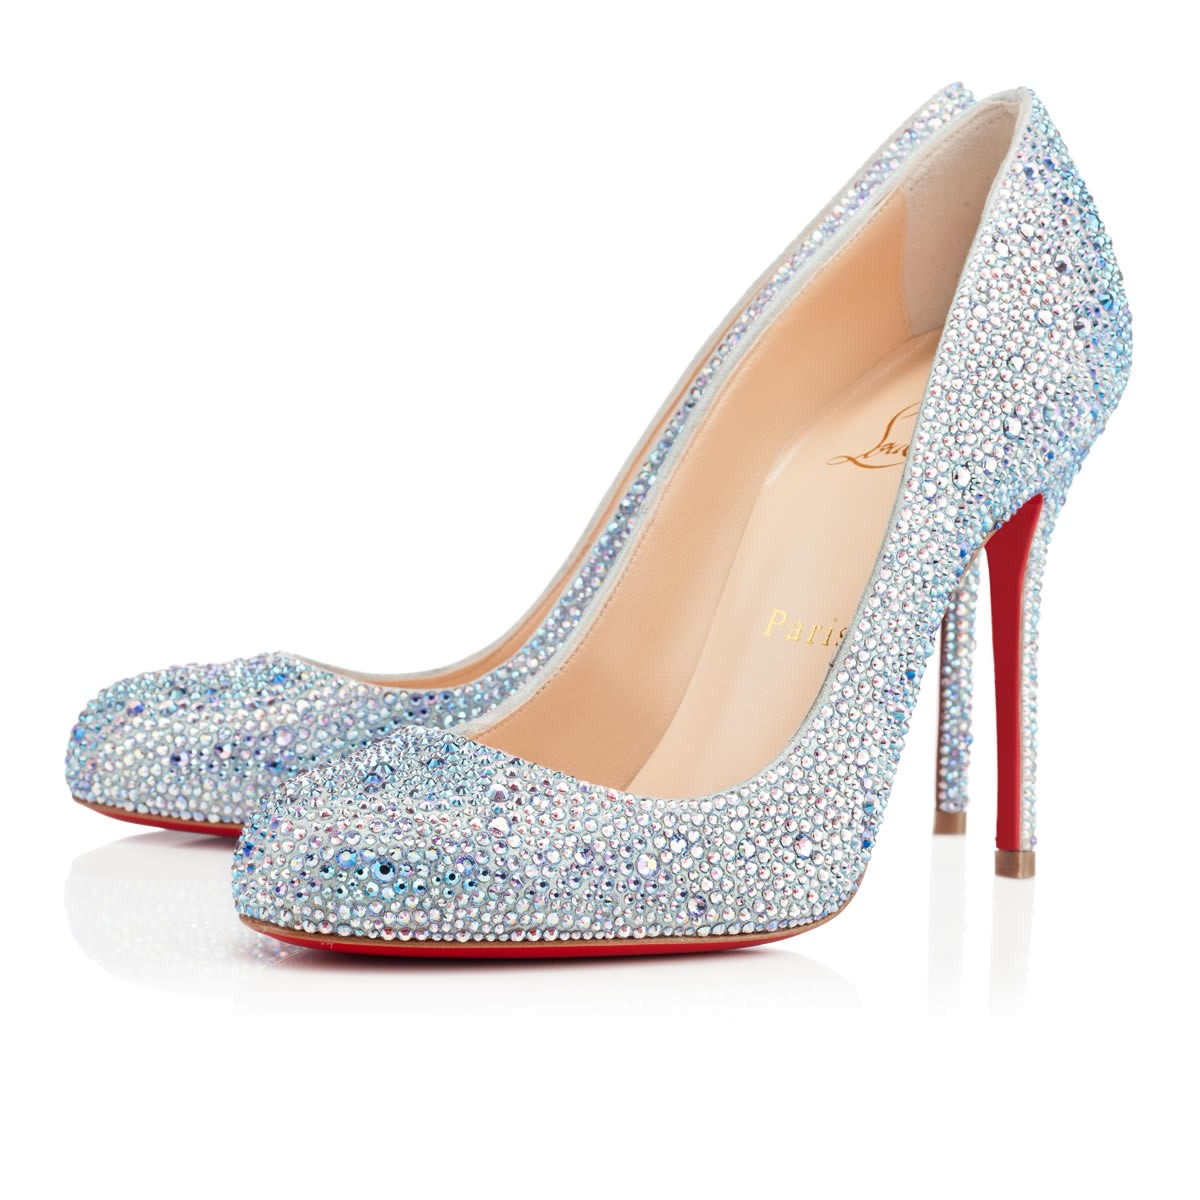 Christian Louboutin Fifi Shoes